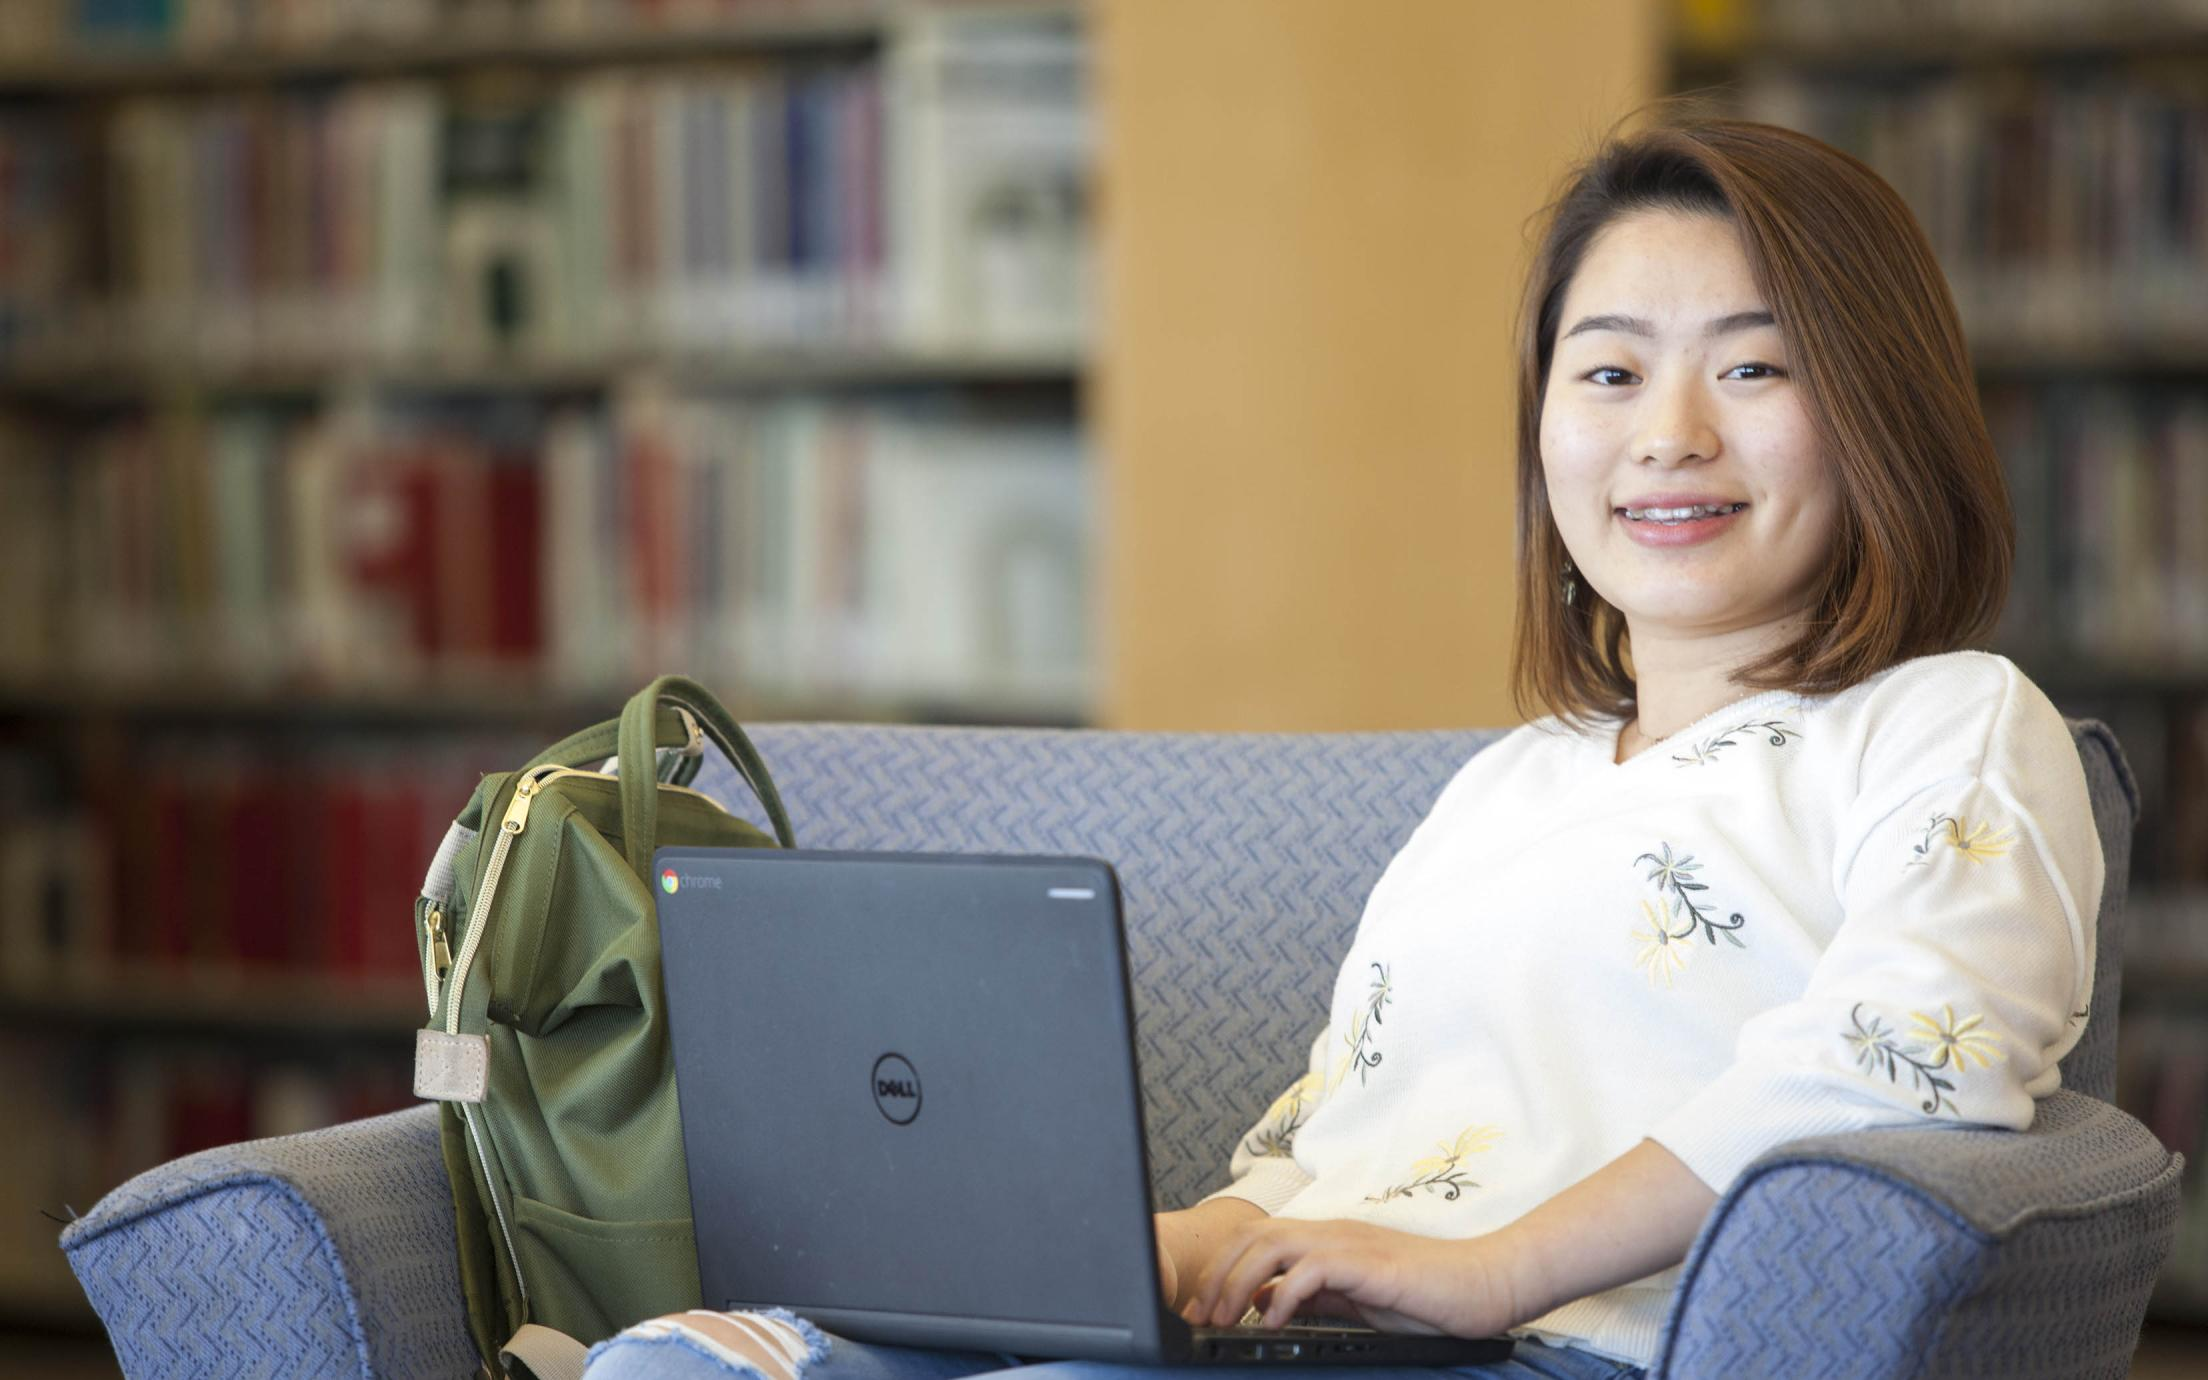 A Student of the Bachelor of Arts, Minor in Digital Media program studying in the library